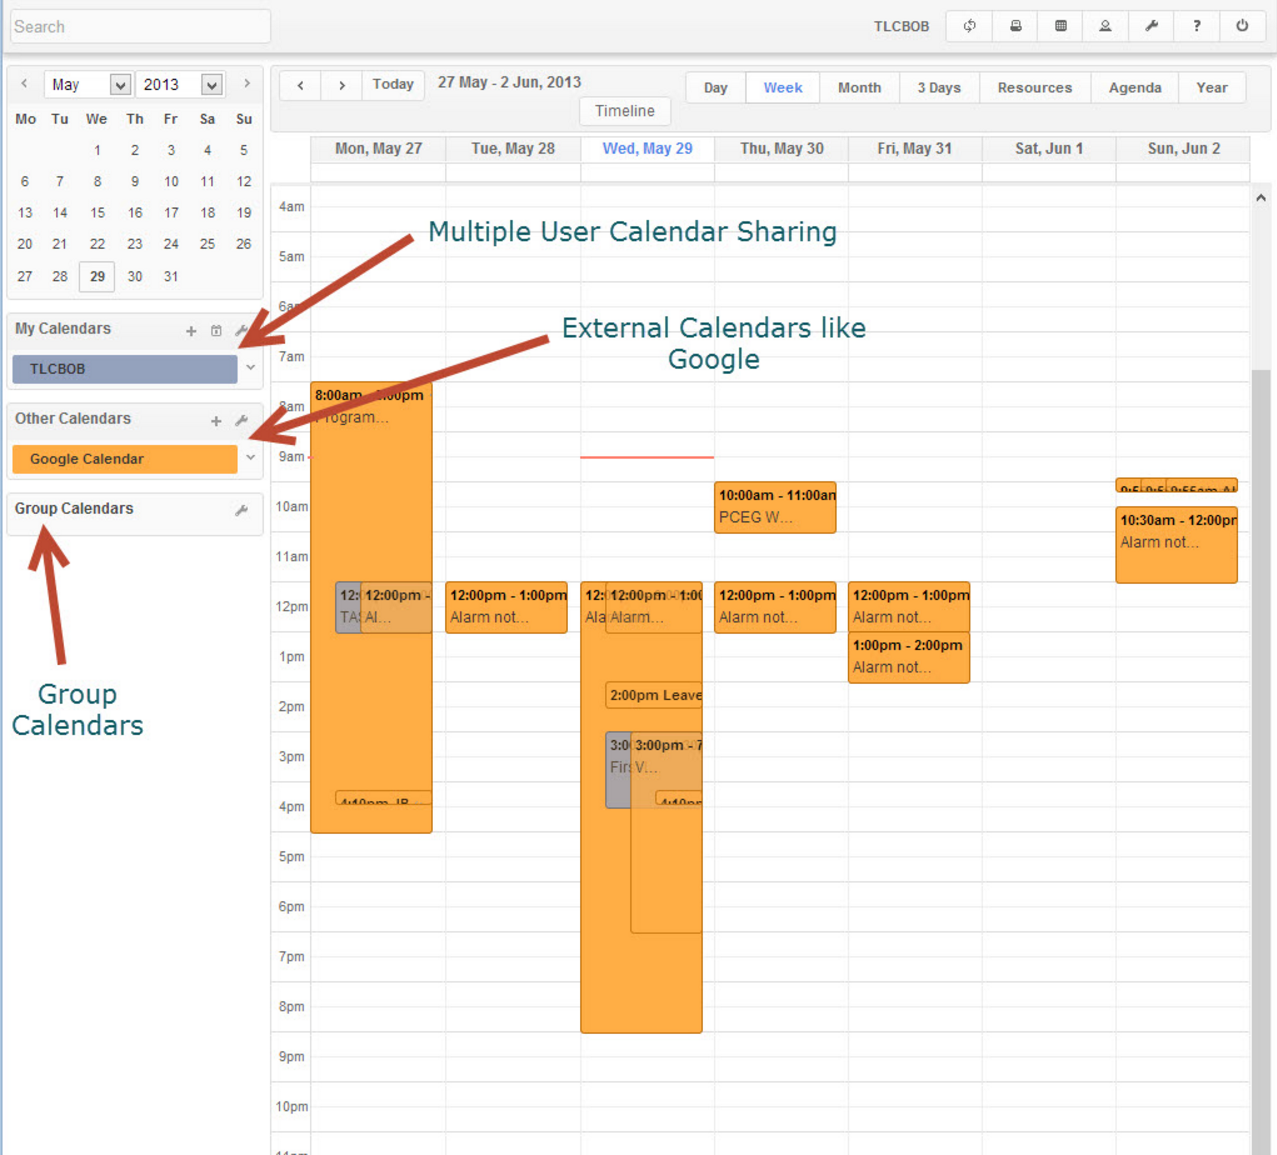 Smart calendar feature allows to view daily activity and appointments scheduled for users